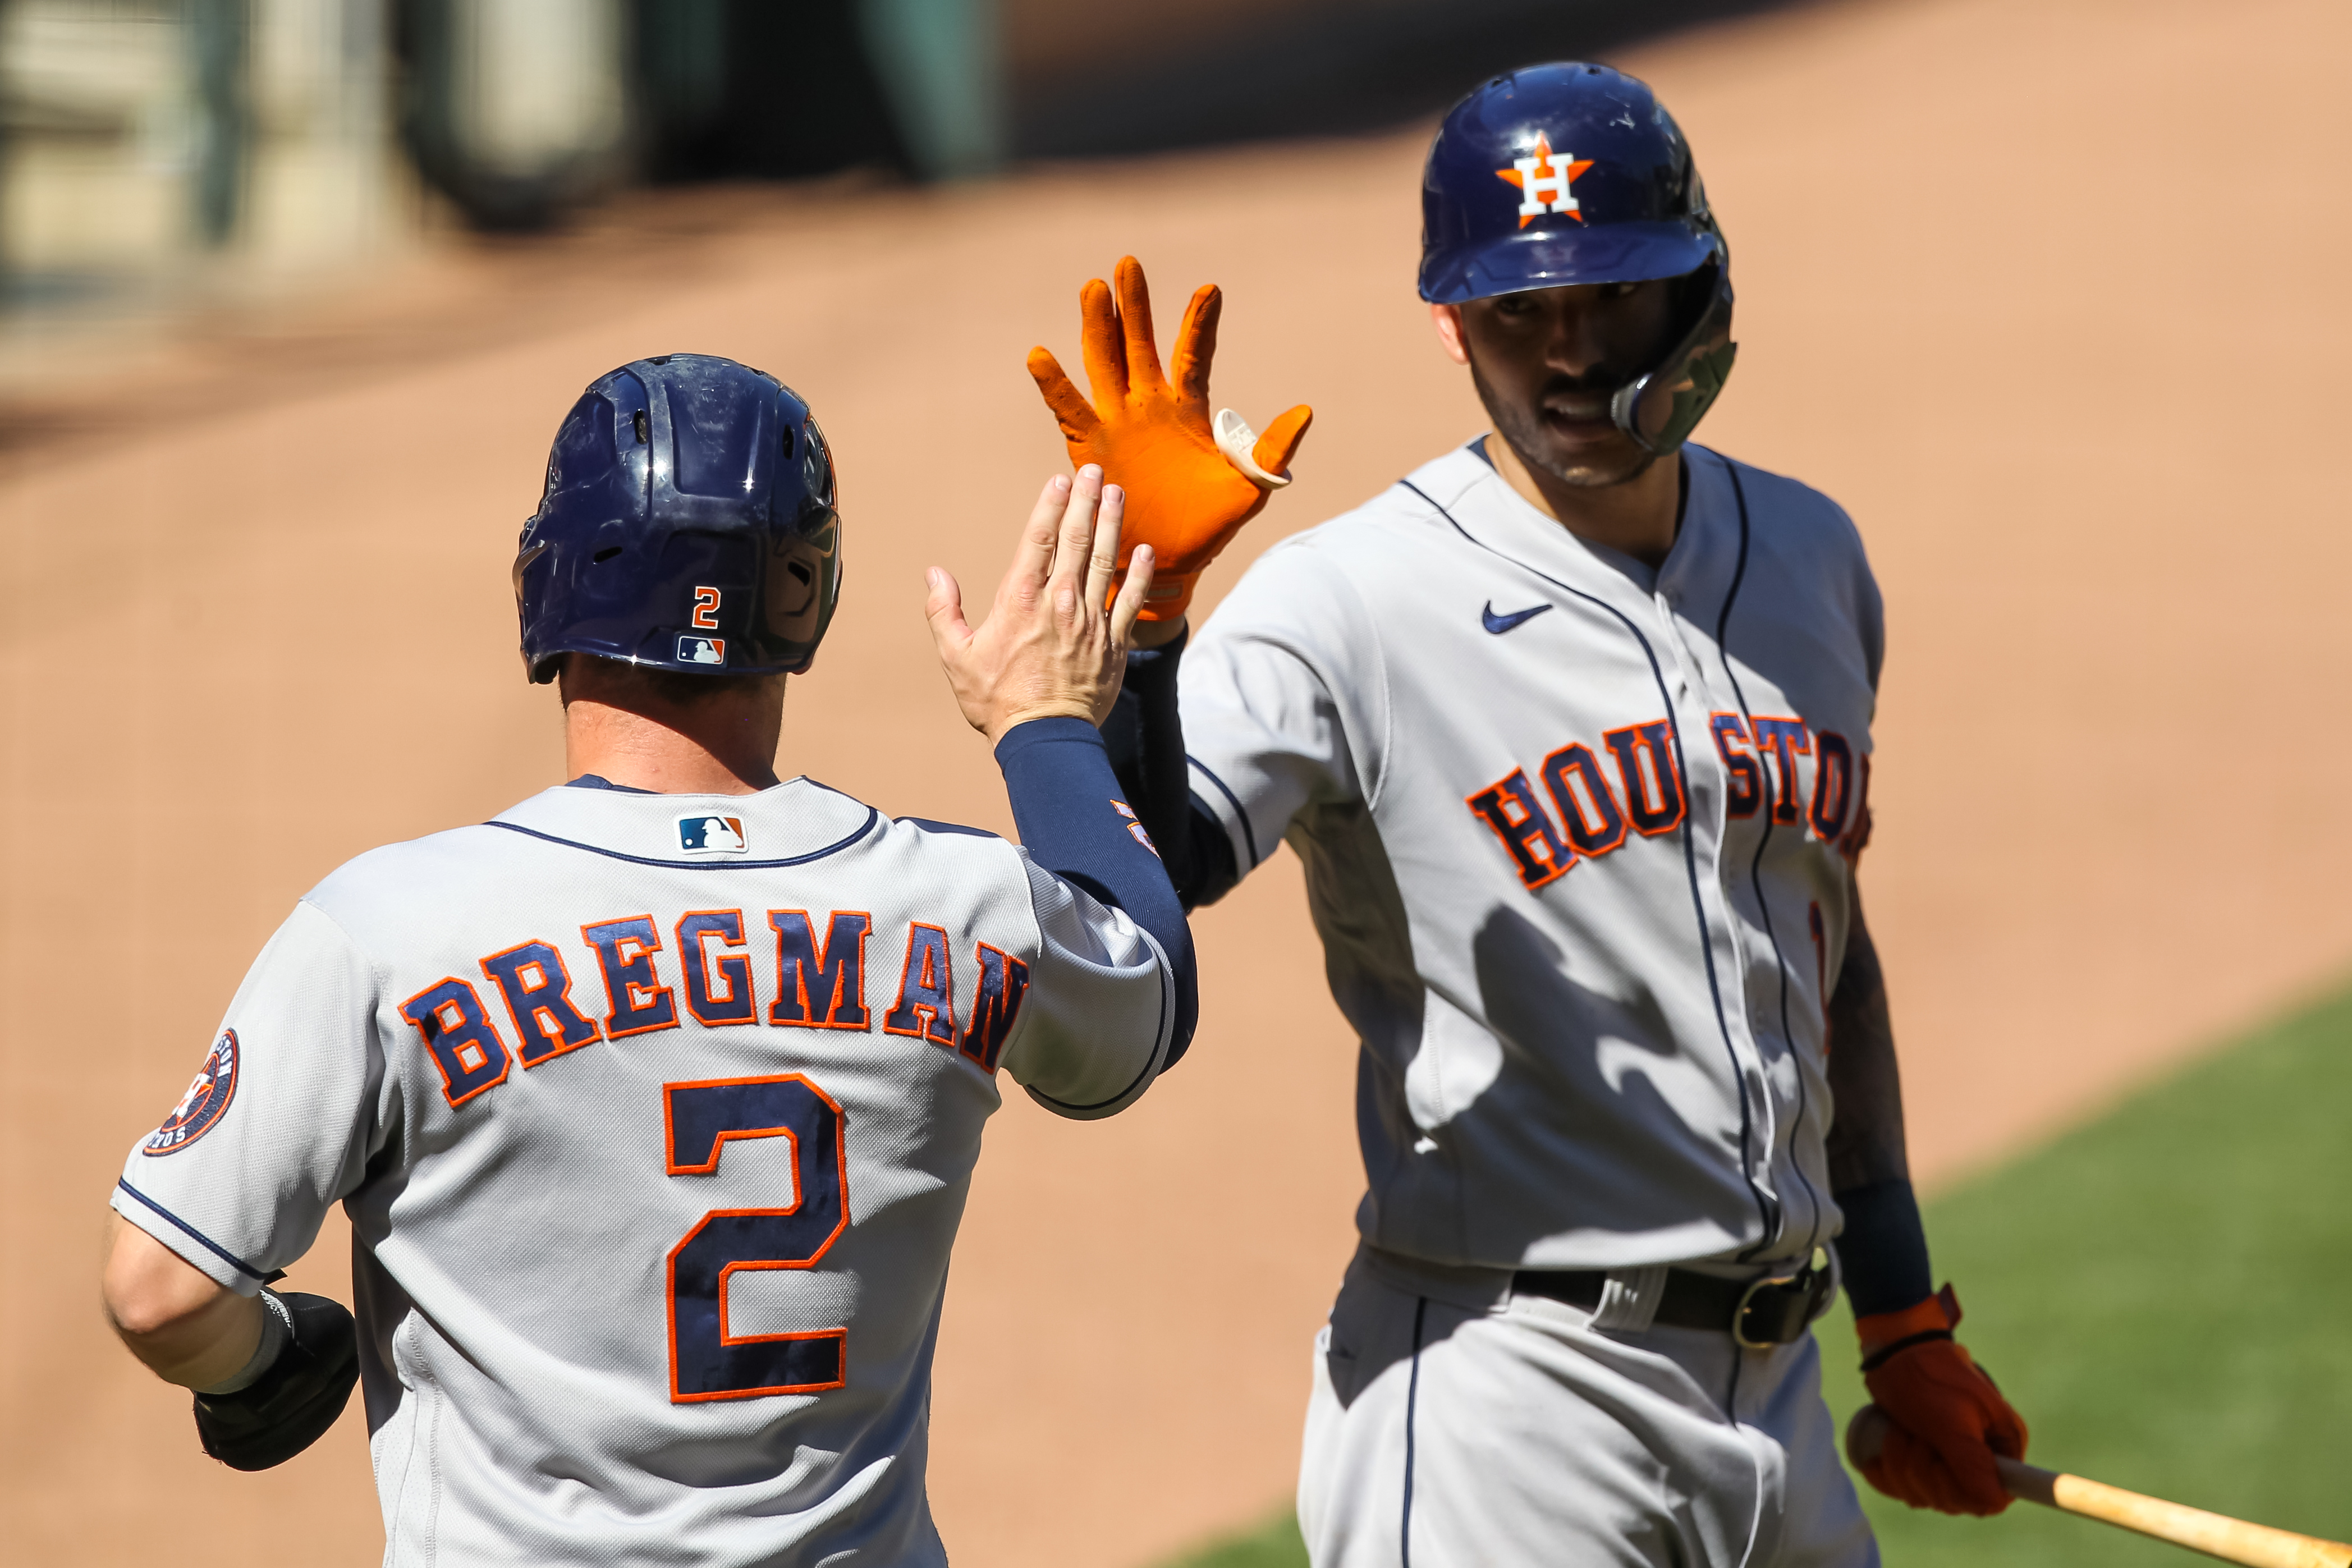 Carlos Correa celebrates with Alex Bregman after Bregman scored a run off a sacrifice fly by Robel Garcia of the Houston Astros in the ninth inning of the game against the Minnesota Twins at Target Field on June 13, 2021 in Minneapolis, Minnesota. The Astros defeated the Twins 14-3.